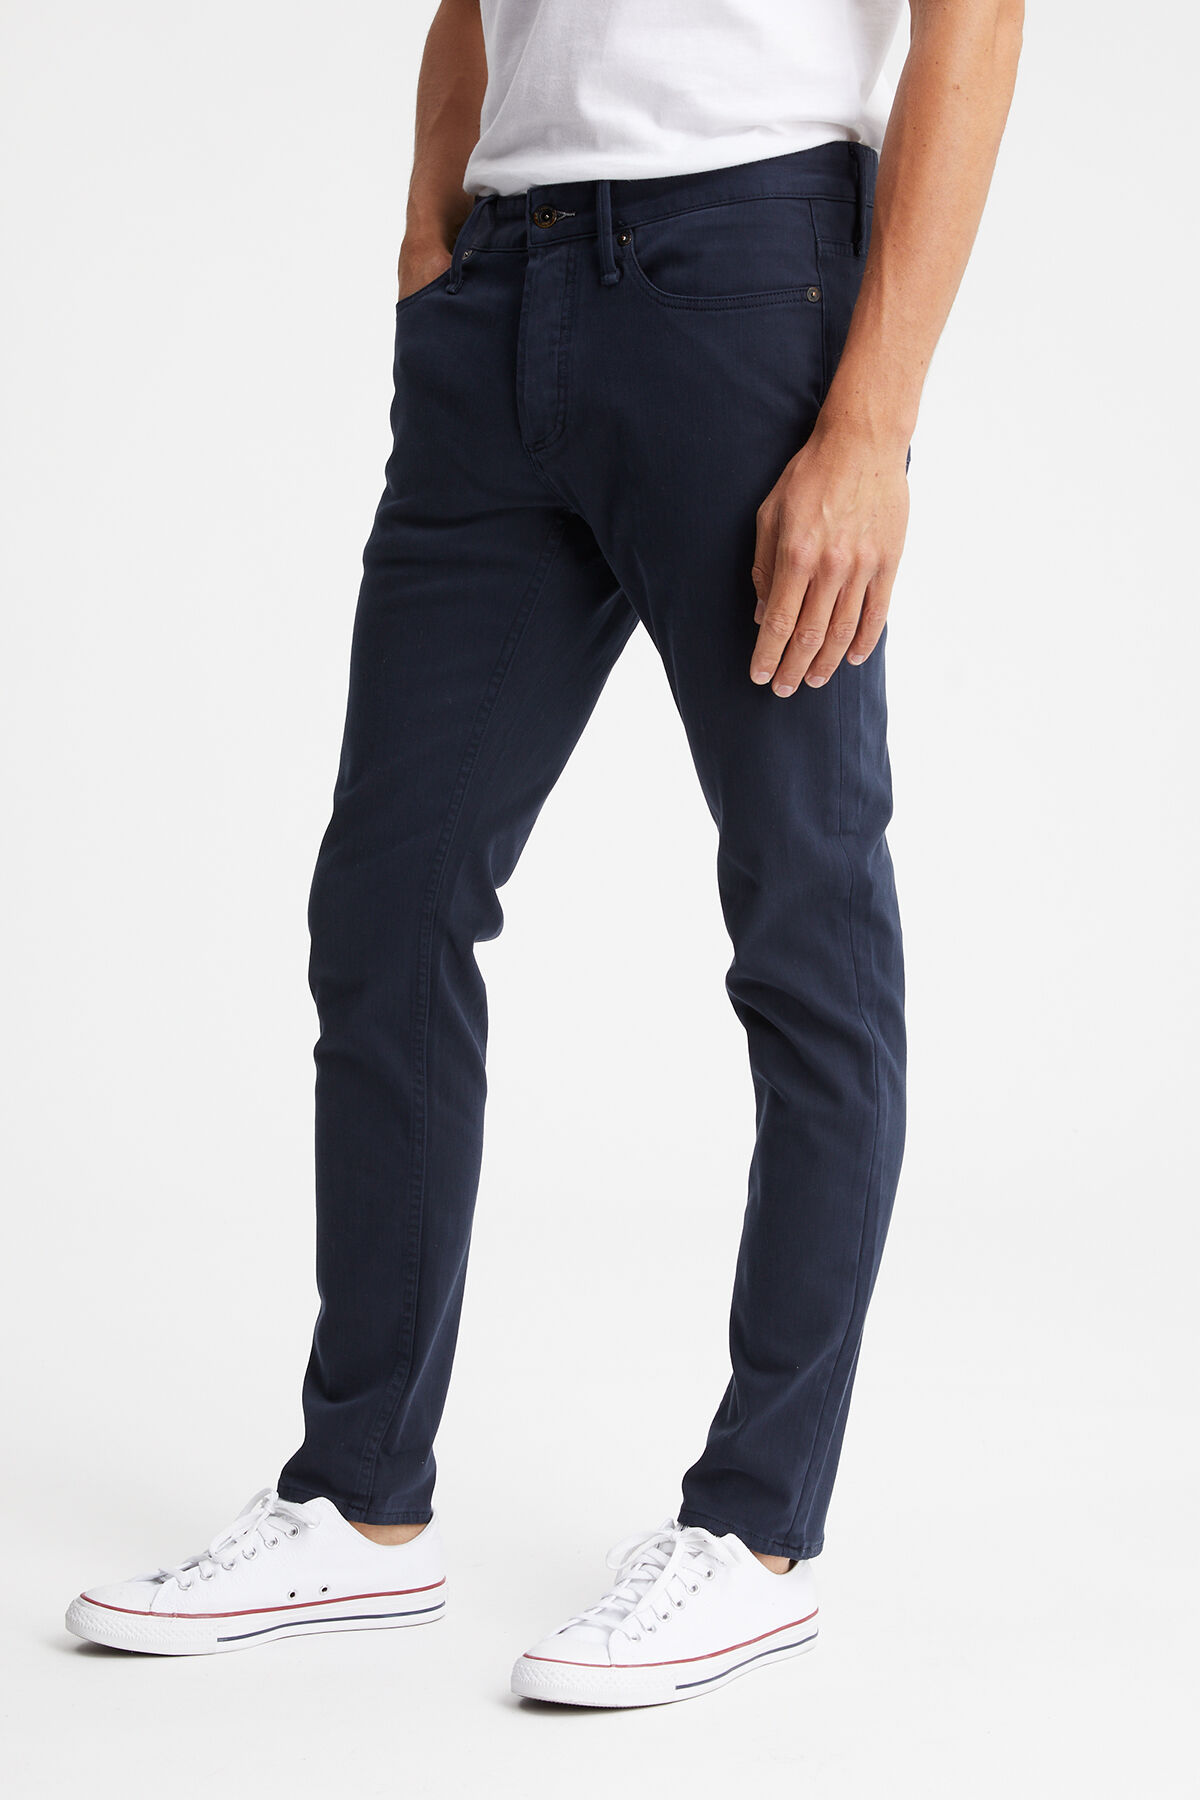 BOLT Garment dyed - Skinny Fit